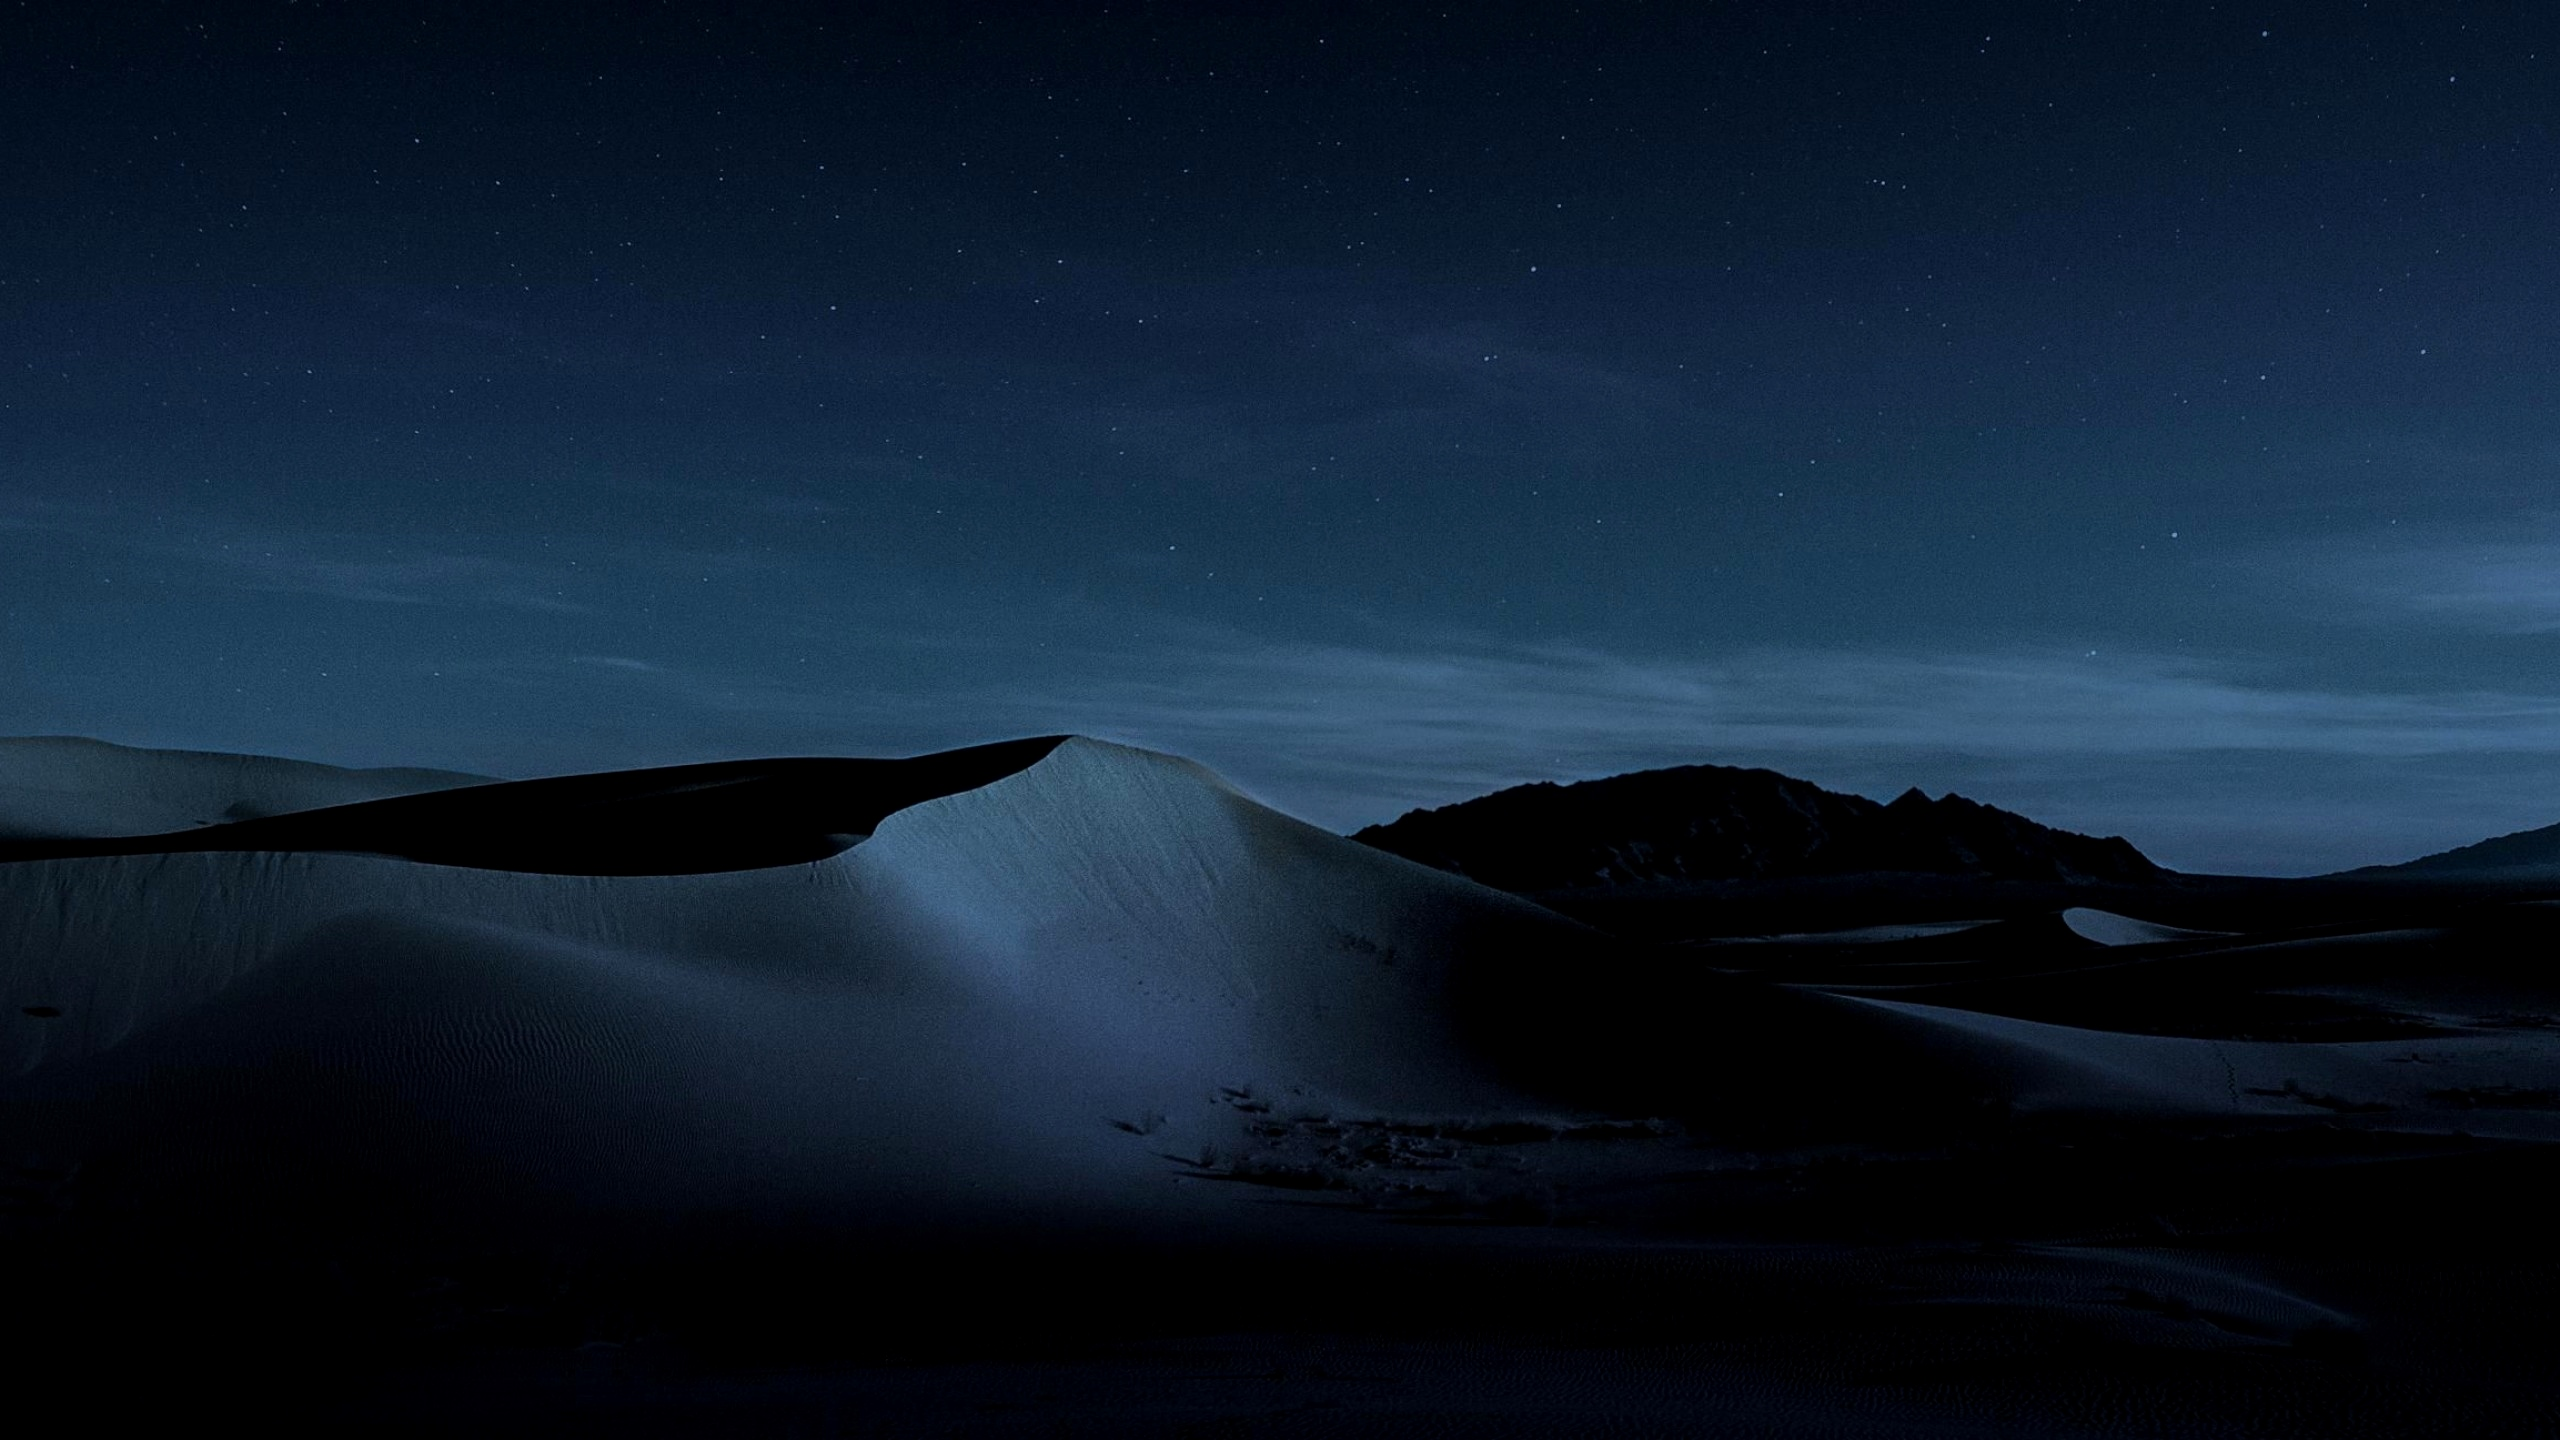 Mac Os Wallpapers 4k Posted By John Sellers Images, Photos, Reviews